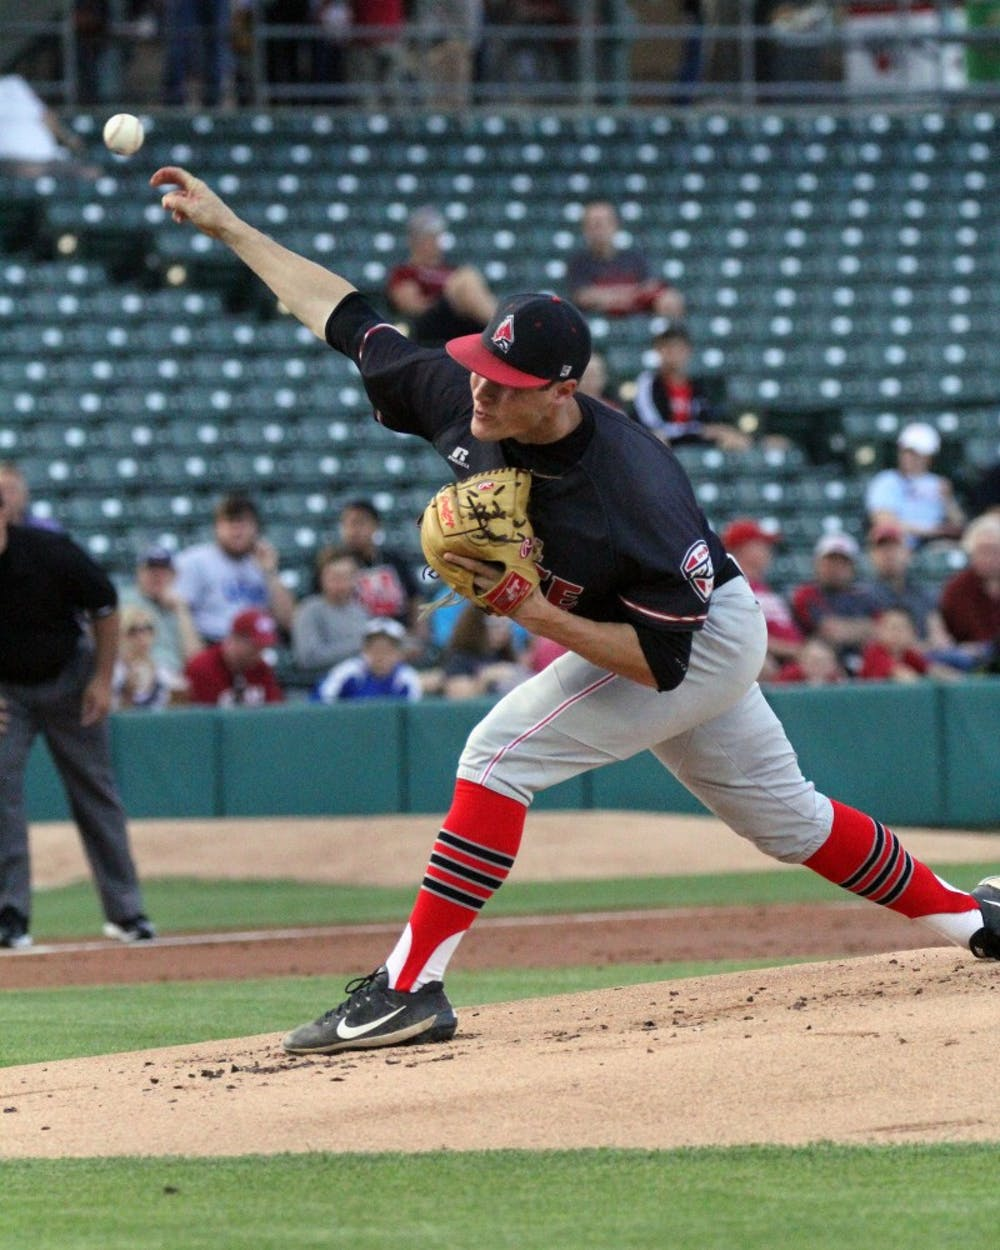 Junior Colin Brockhouse pitches during the Cardinals' game against Indiana University on April 25 at Victory Field. Brockhouse was the starting pitcher for Ball State. Paige Grider // DN